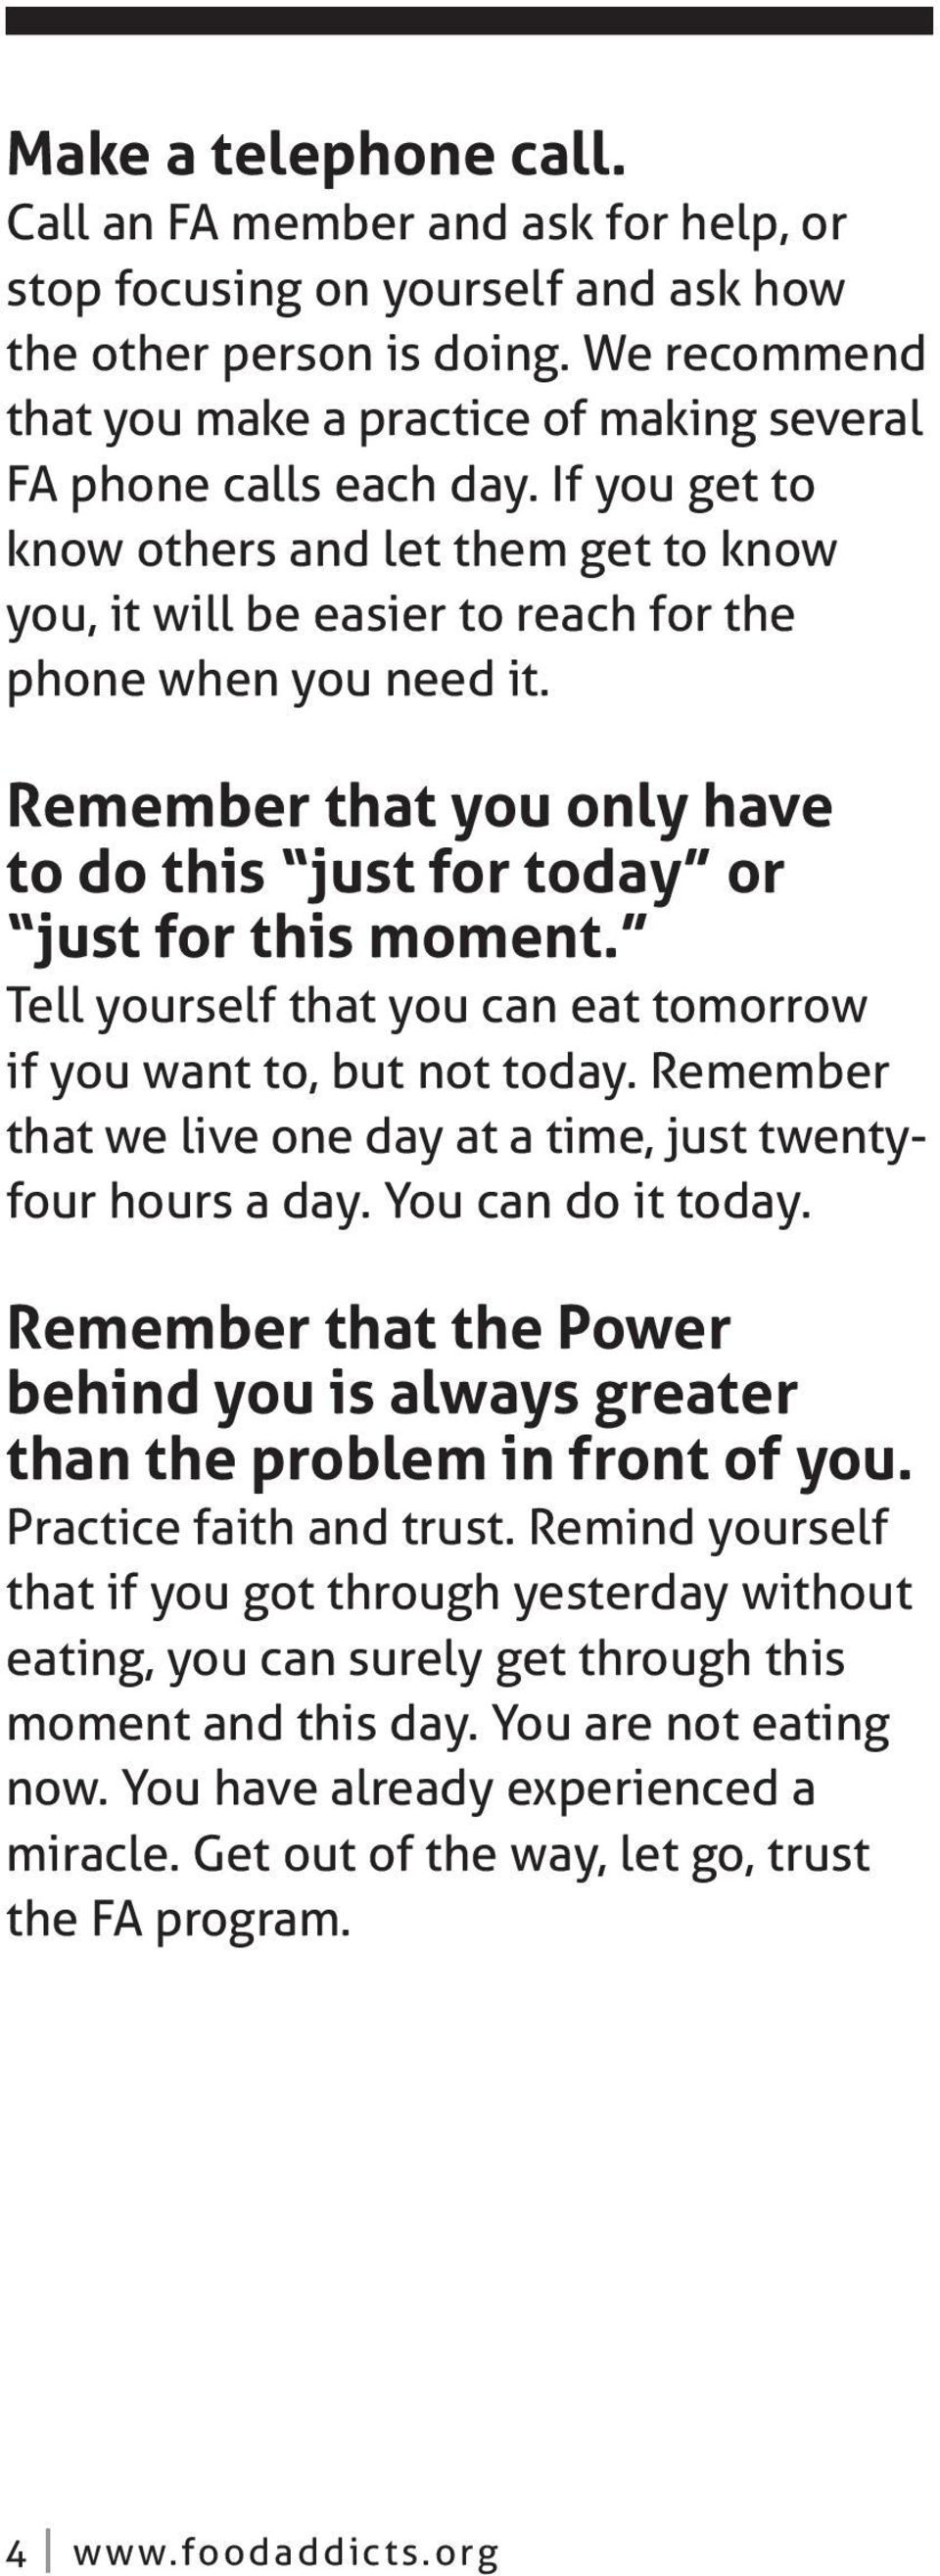 Remember that you only have to do this just for today or just for this moment. Tell yourself that you can eat tomorrow if you want to, but not today.